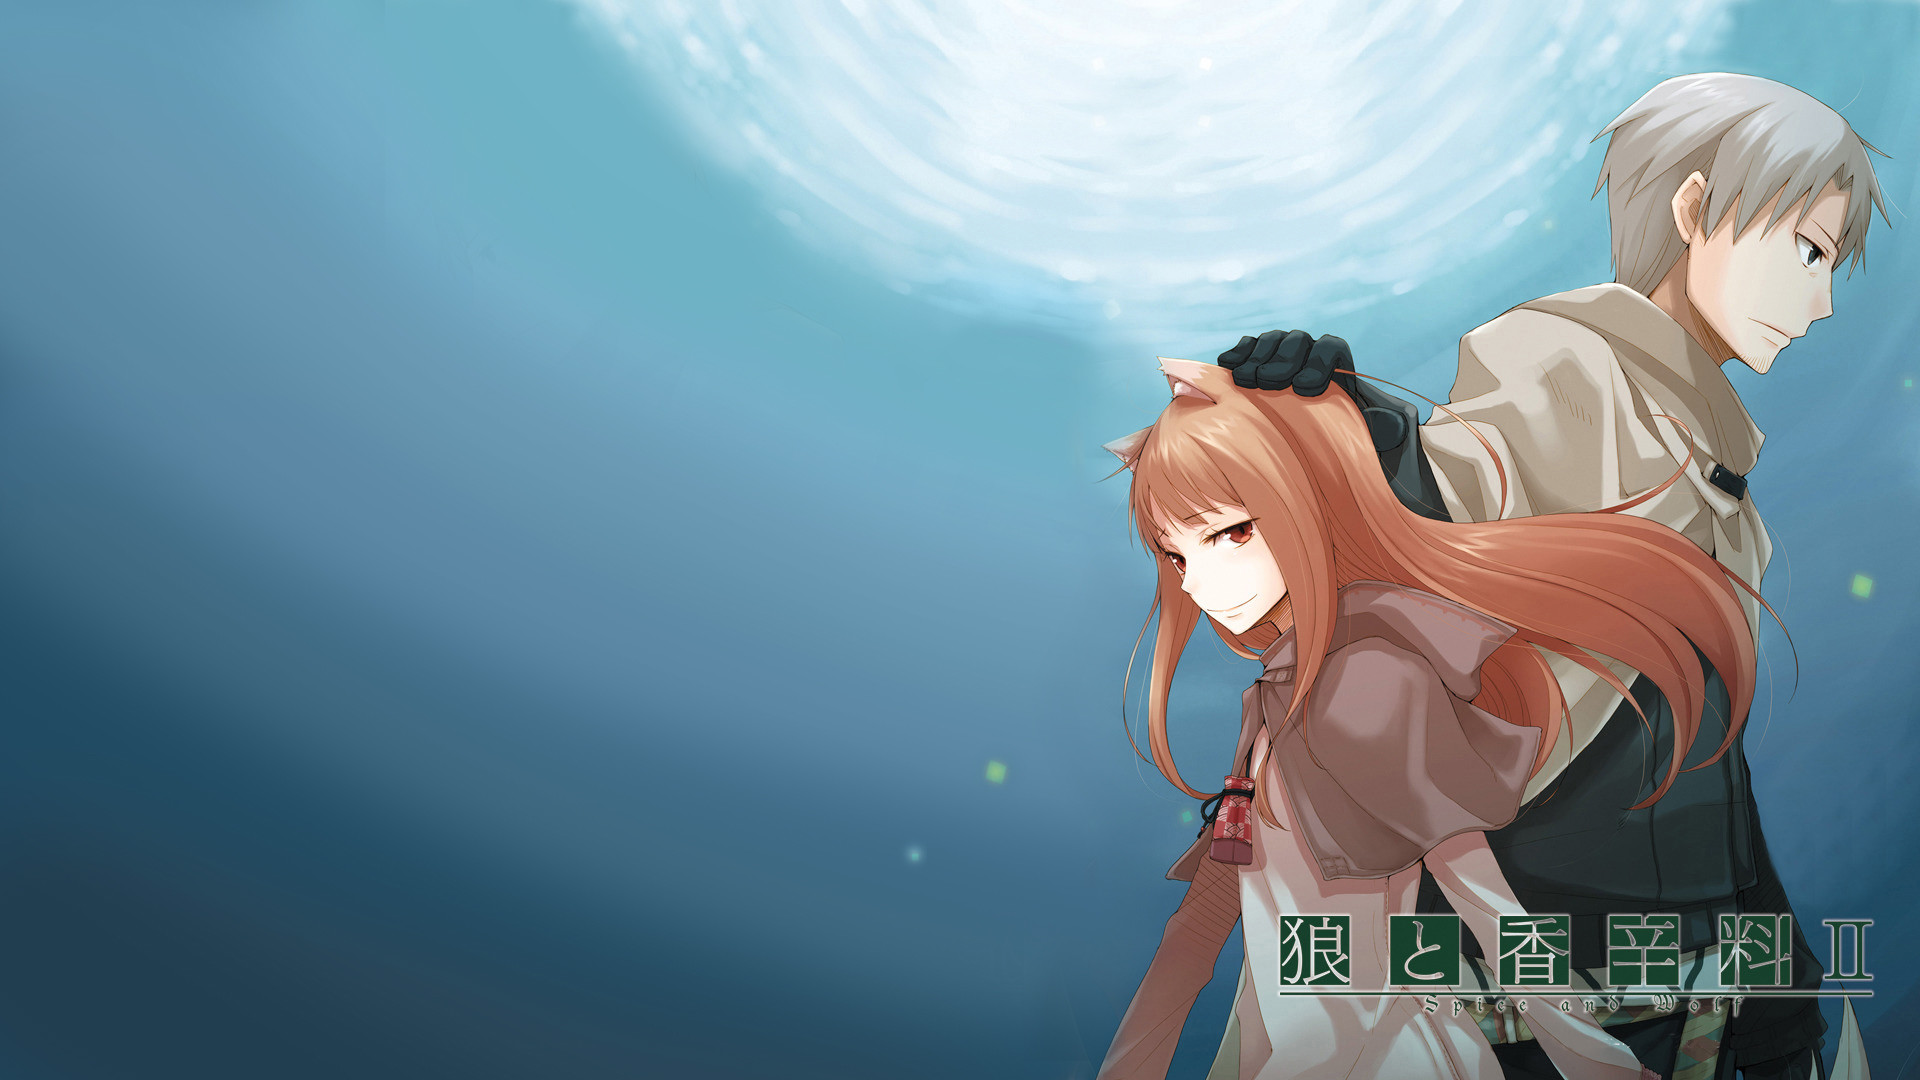 Spice And Wolf Wallpapers, Hintergründe | | ID:177339